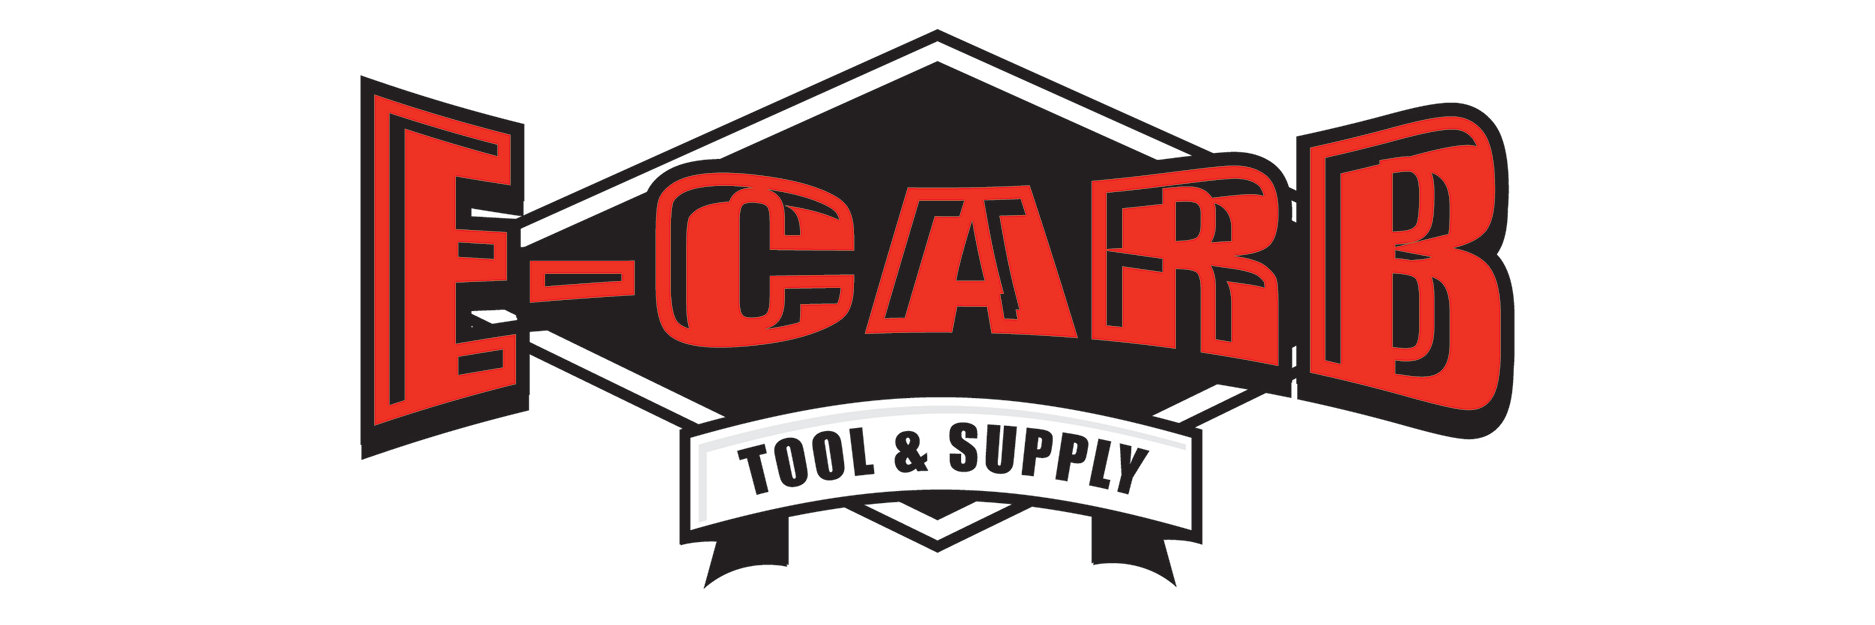 E-Carb Tool & Supply